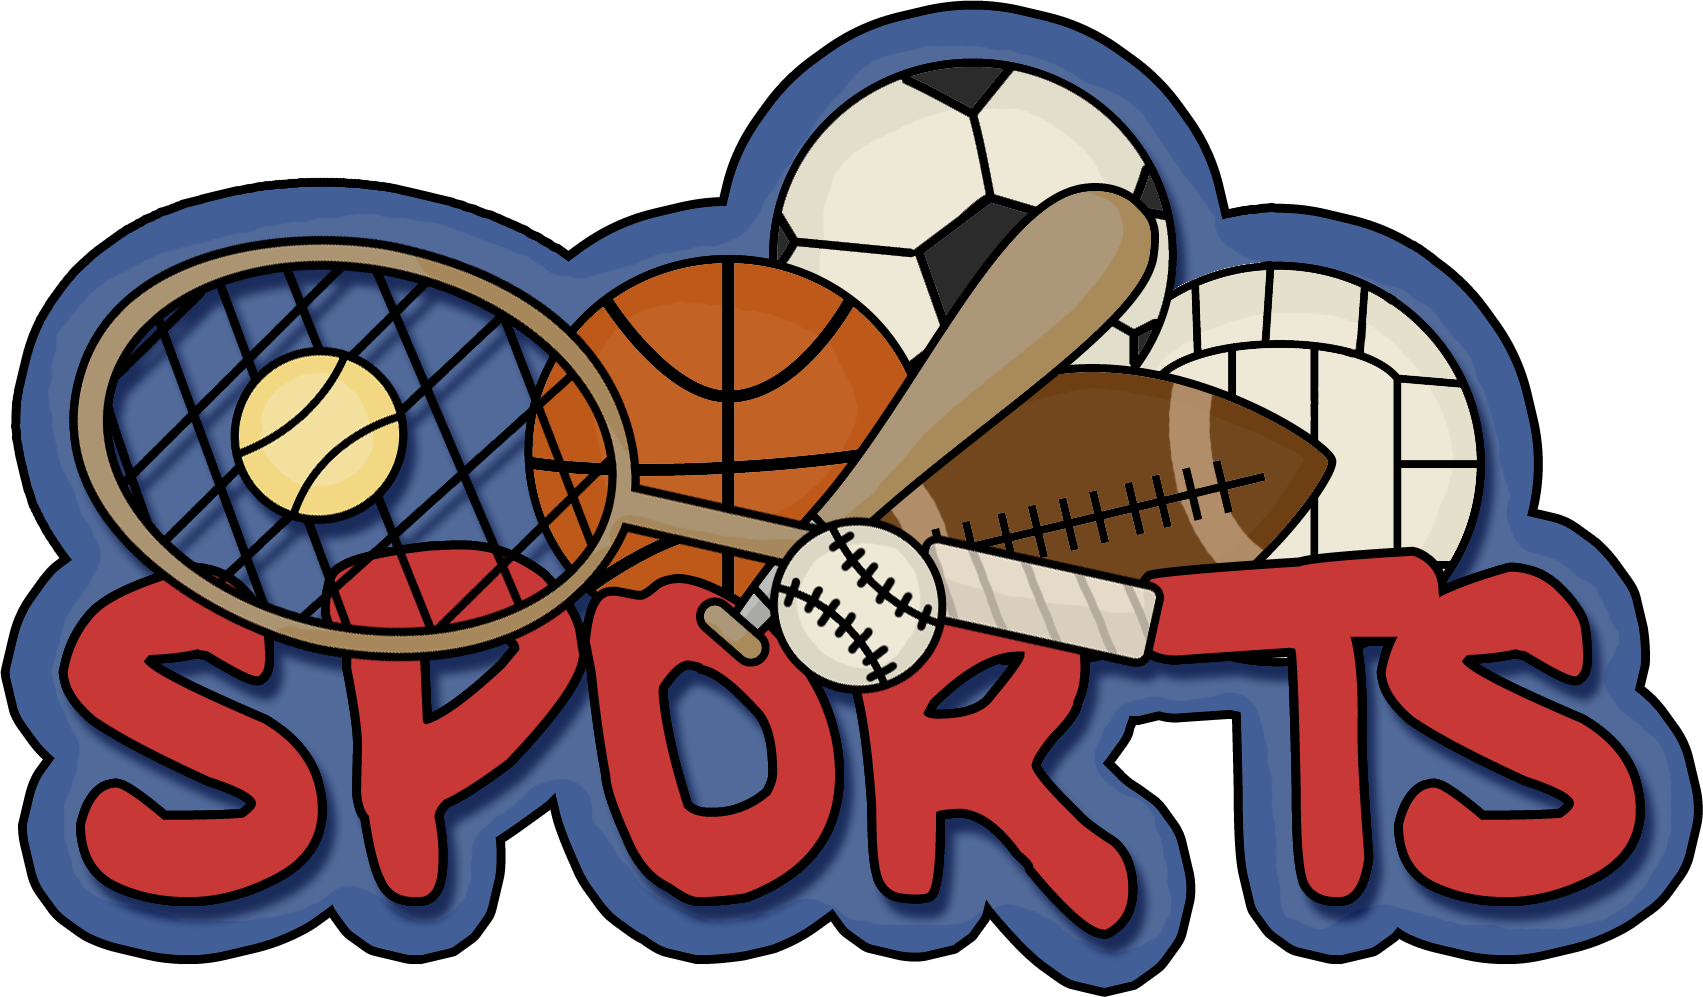 vector black and white sports essay writing sports start here for anything anytime anywhere